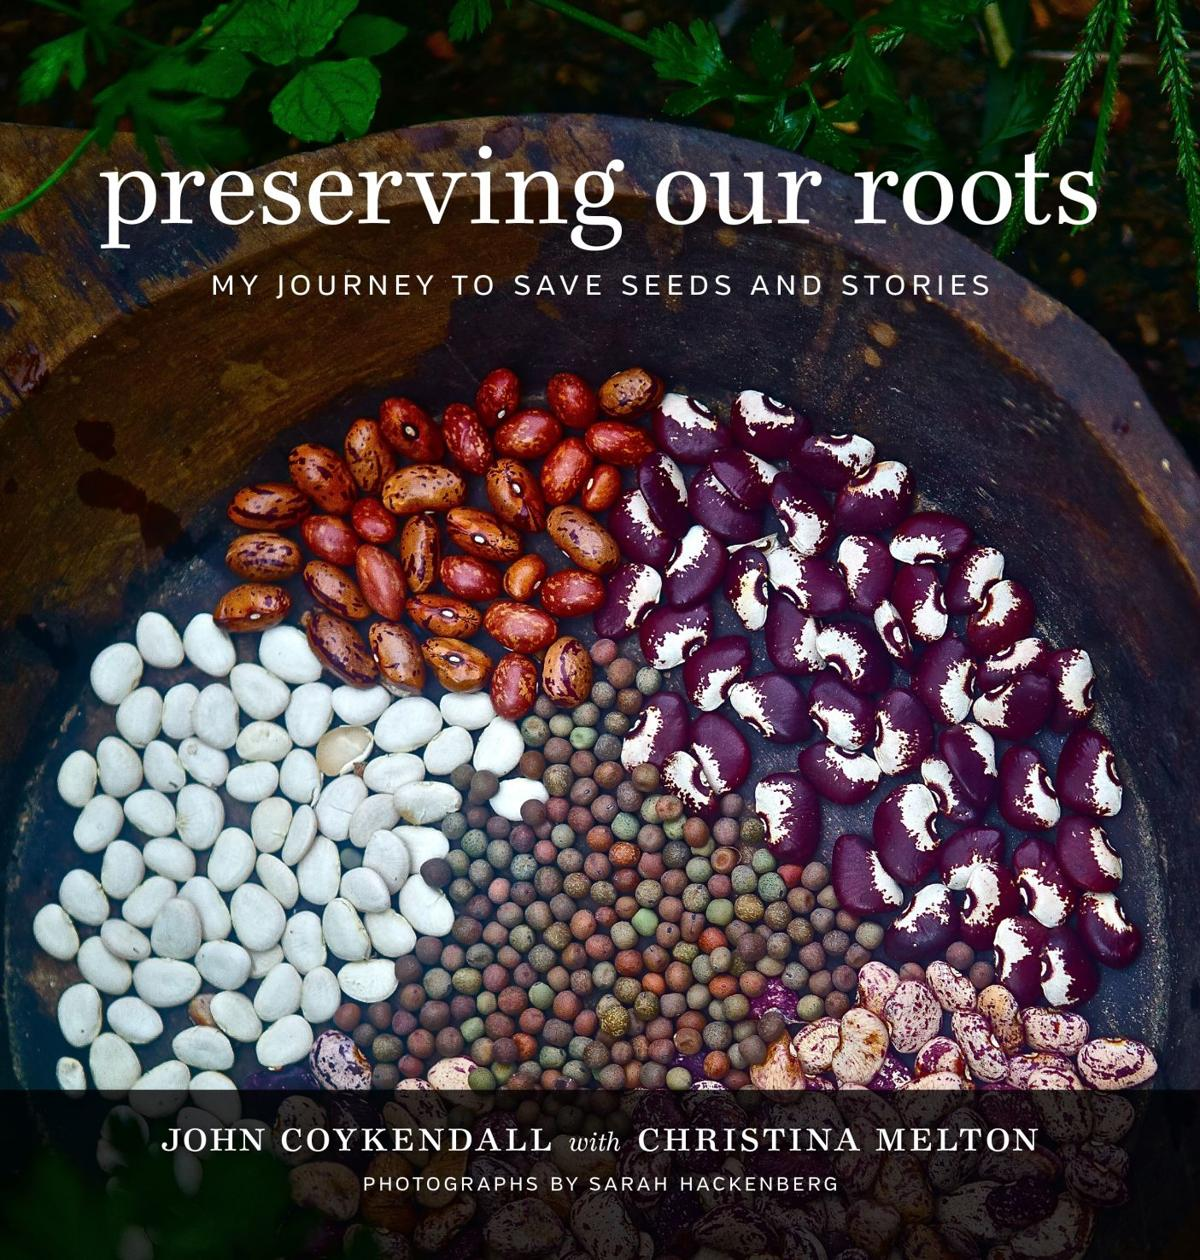 preserving our roots